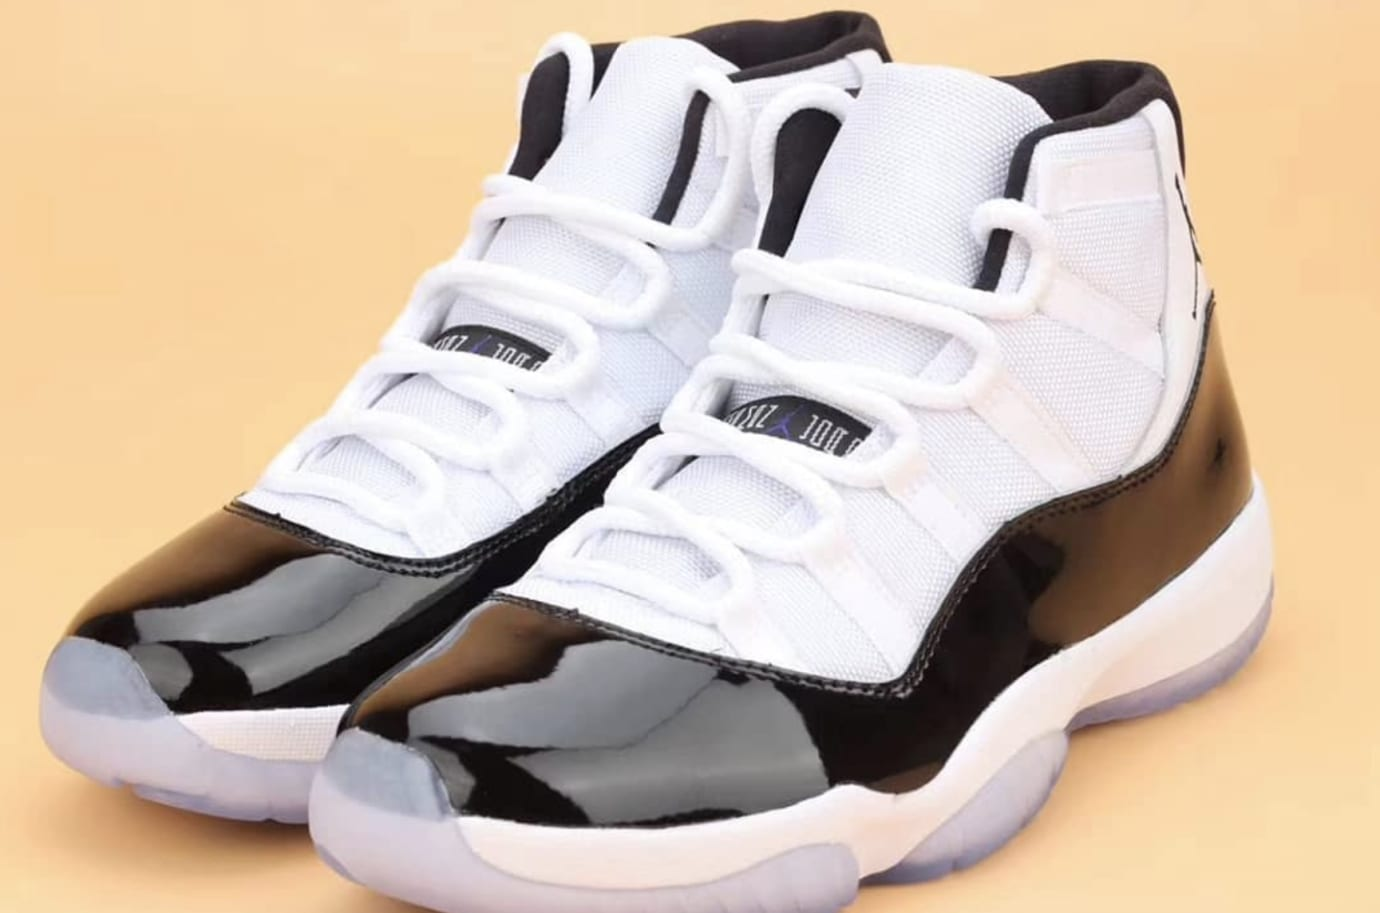 d6227e3be8381b Concord  Air Jordan 11 Returning In 2018 378037-100